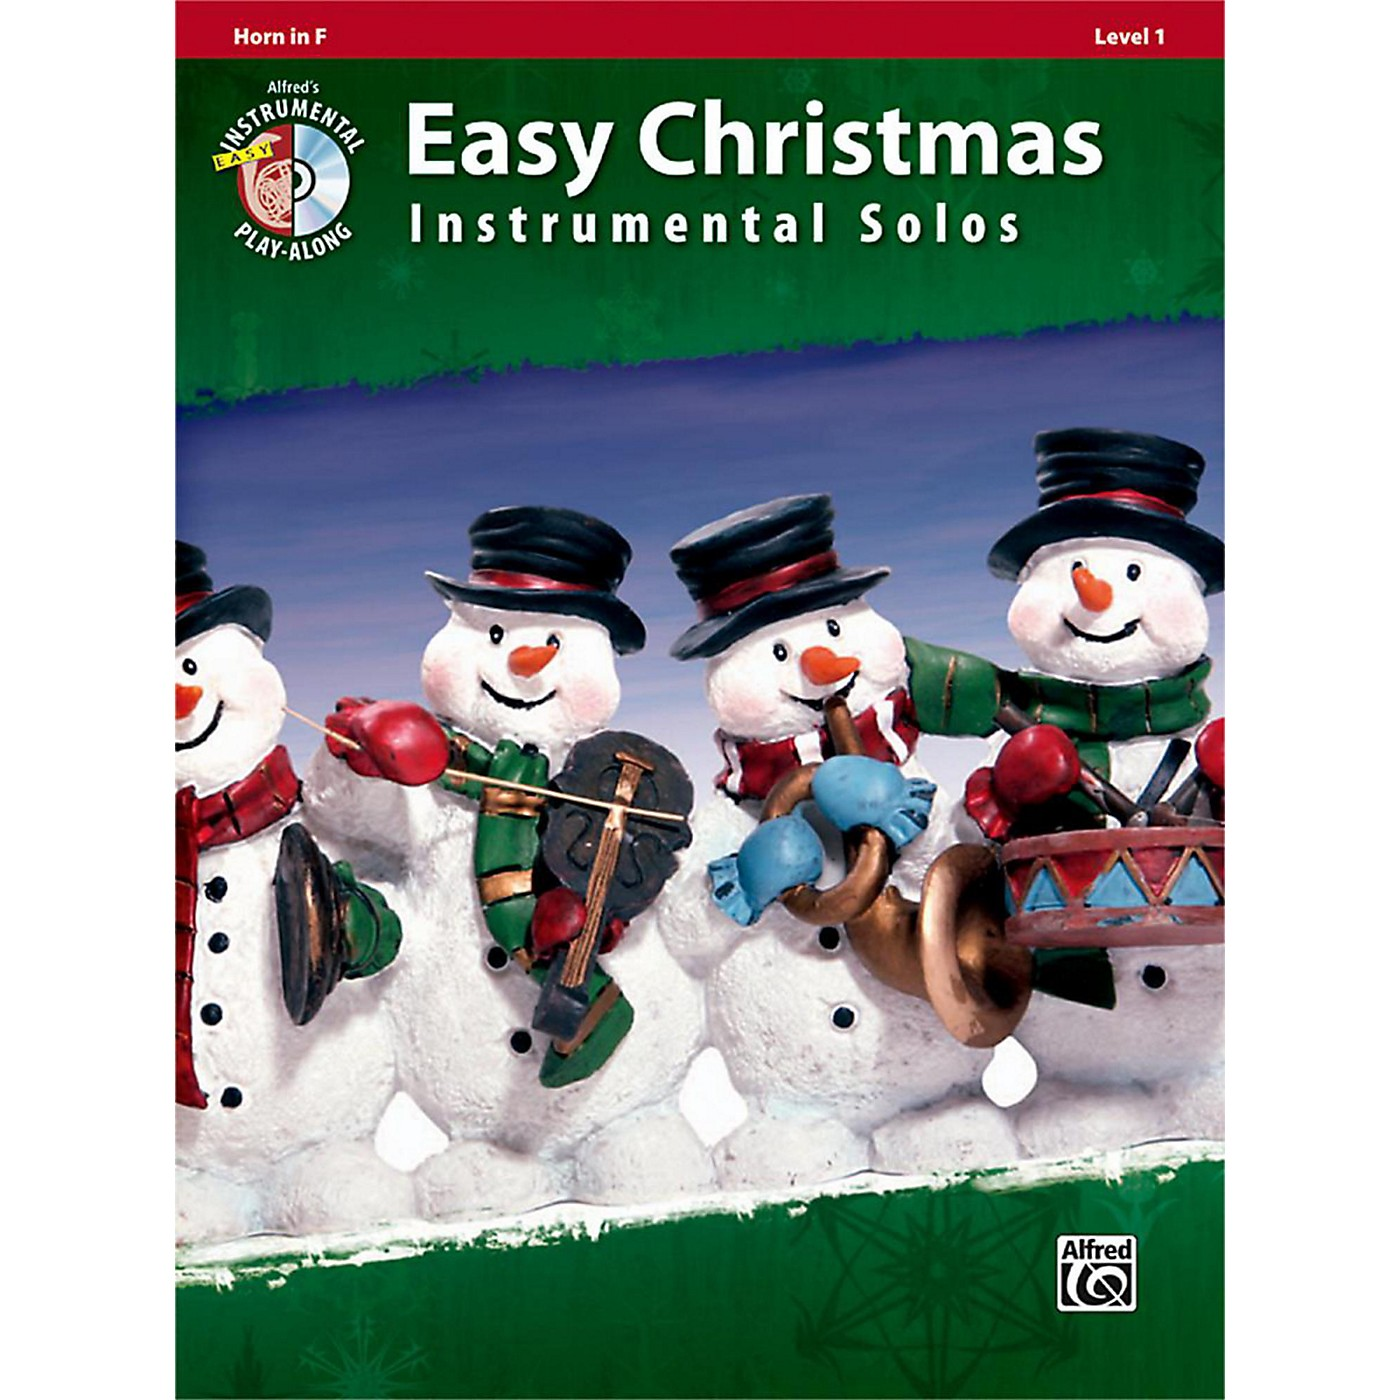 Alfred Easy Christmas Instrumental Solos Level 1 Horn in F Book & CD thumbnail